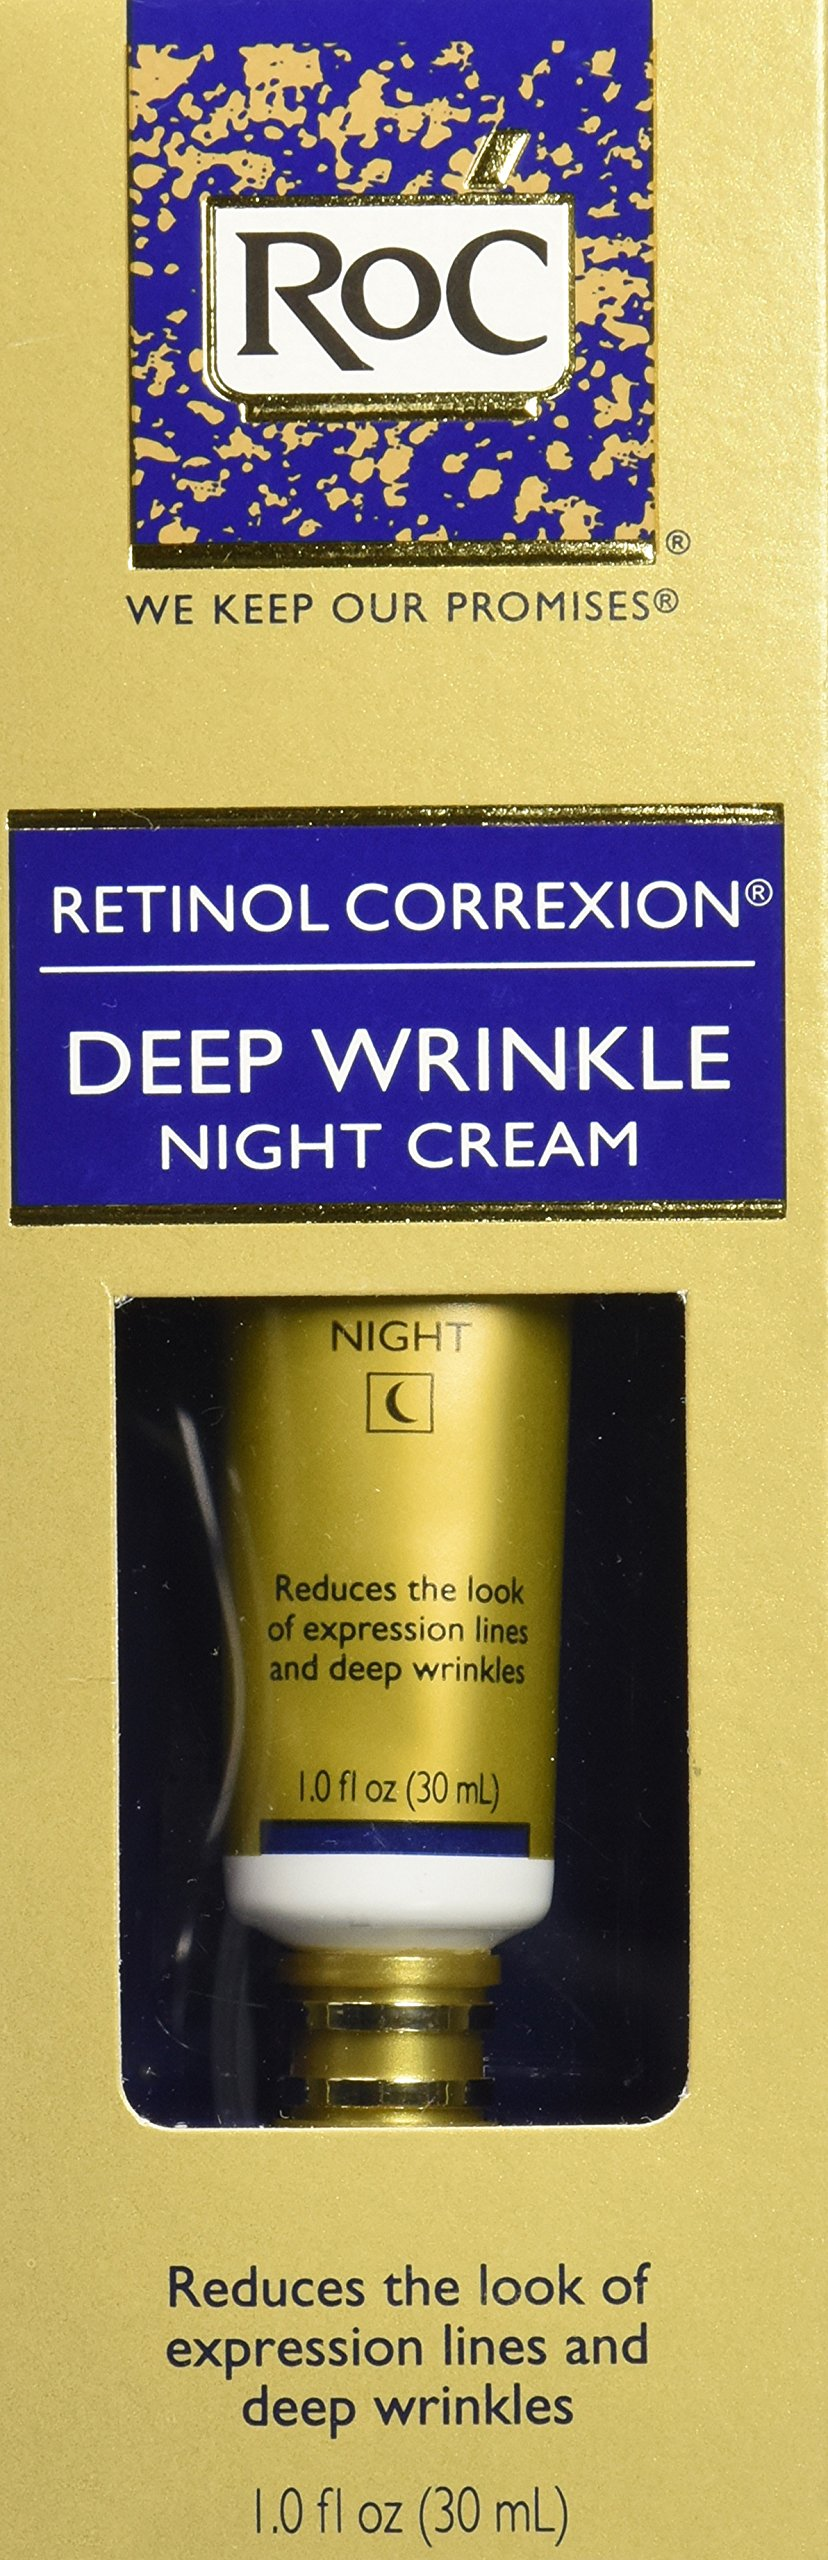 RoC Retinol Correxion Deep Wrinkle Anti-Aging Retinol Night Cream, Oil-Free and Non-Comedogenic, 1 oz by RoC (Image #3)